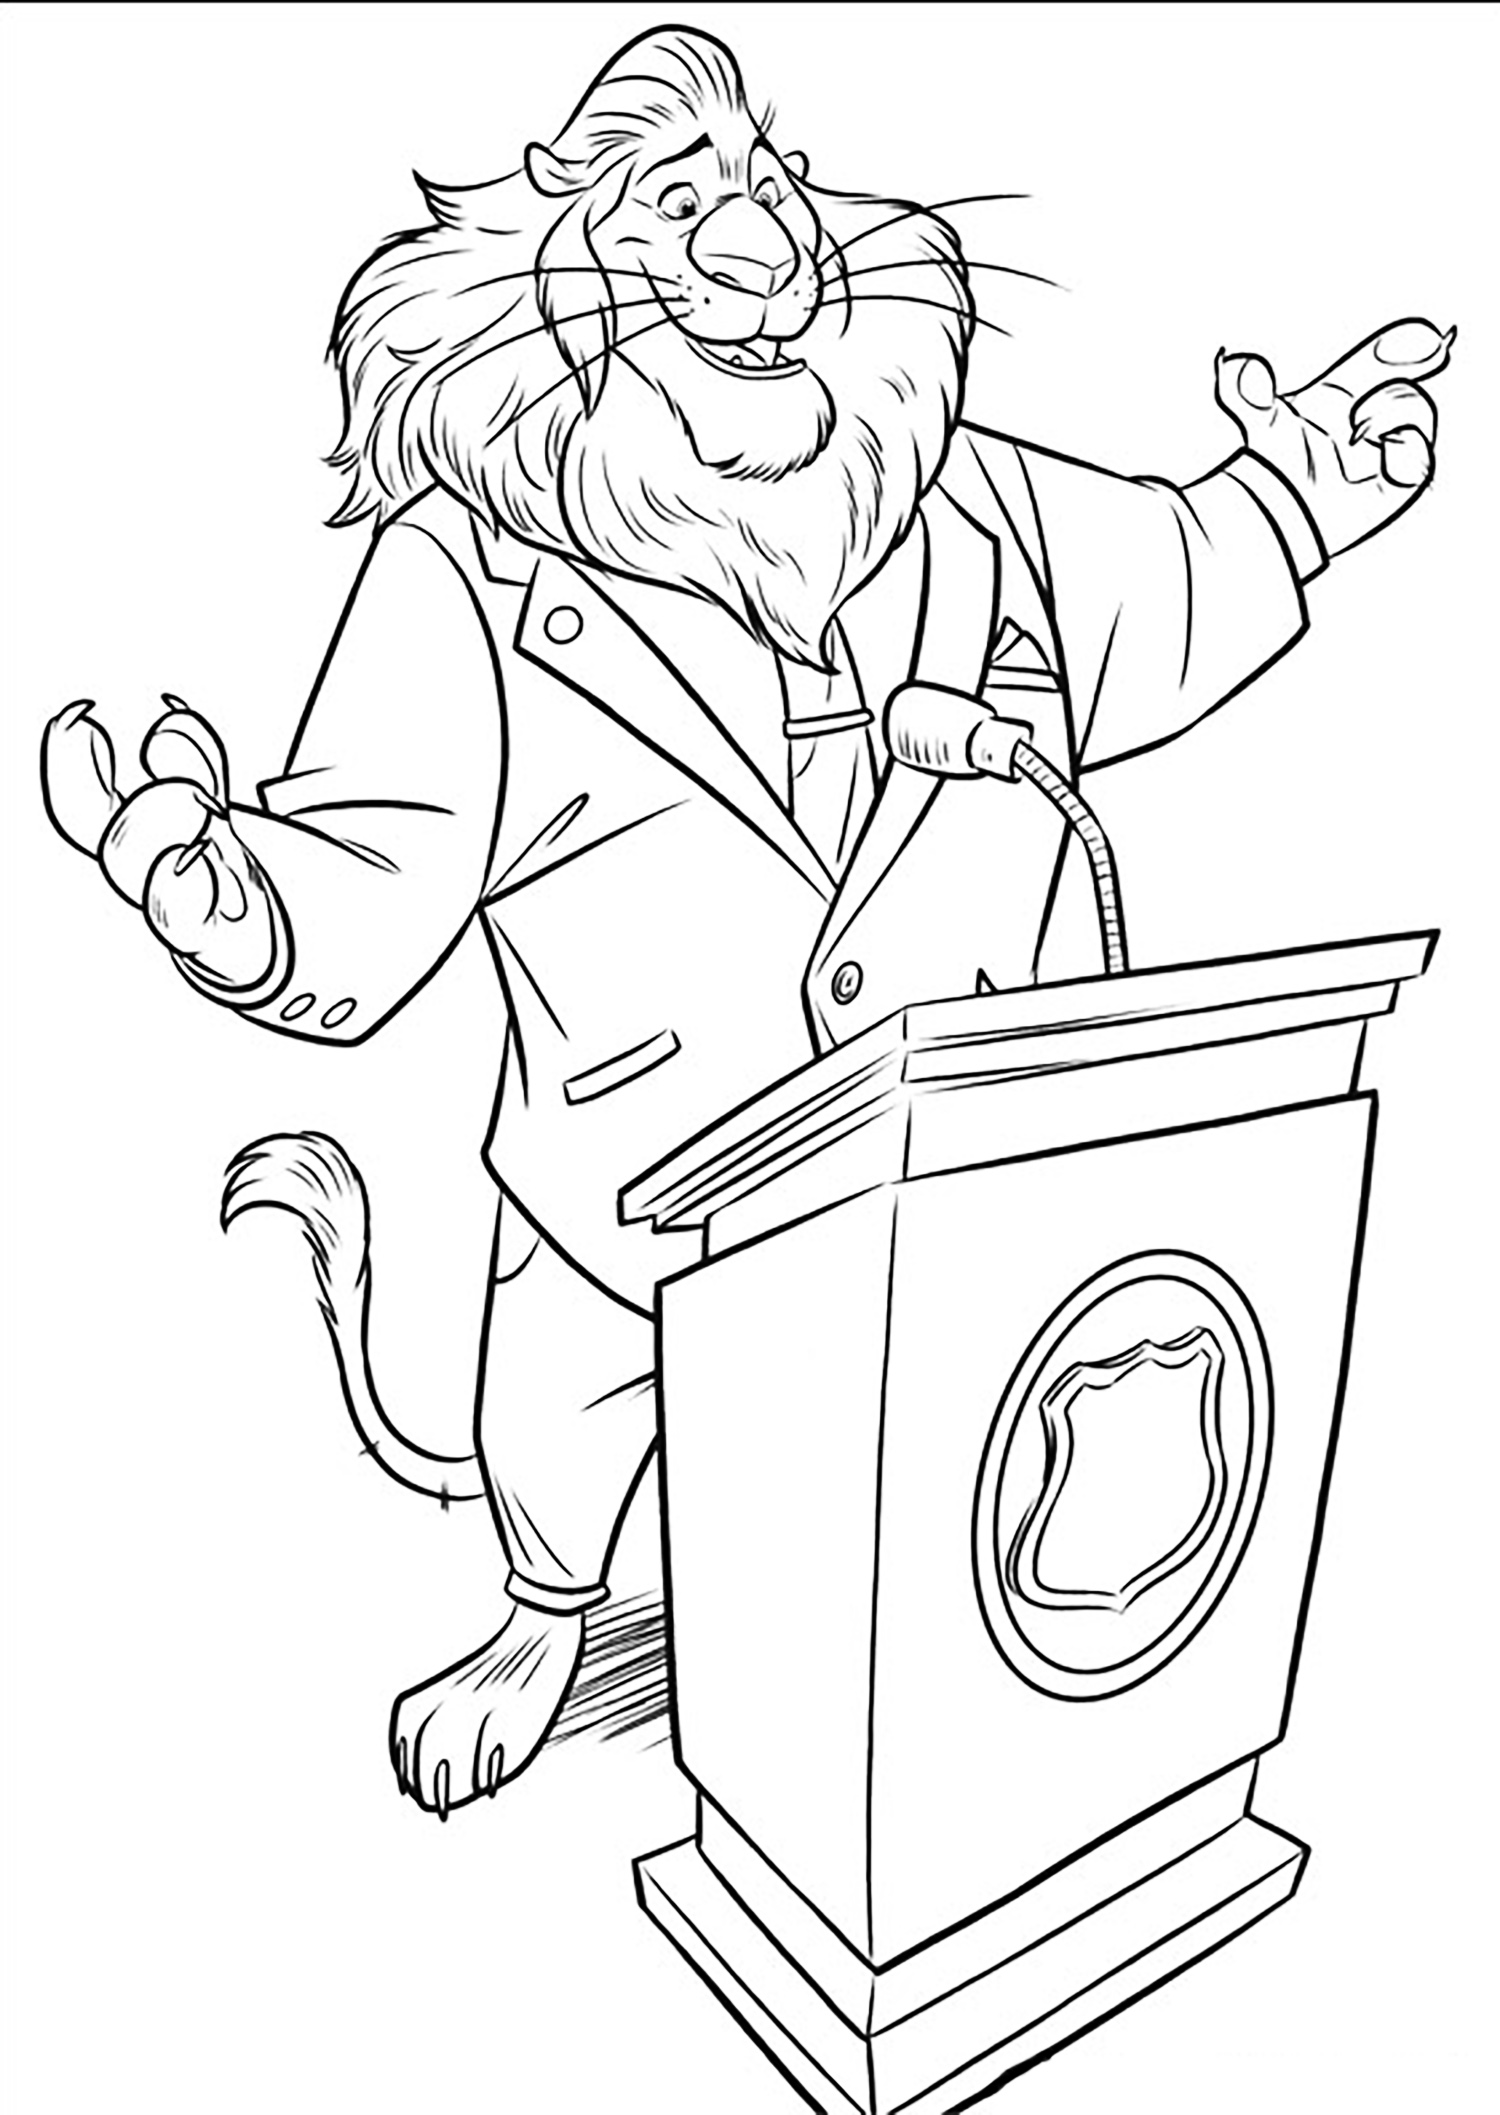 Simple Zootopia coloring page to print and color for free : Mayor Lionheart